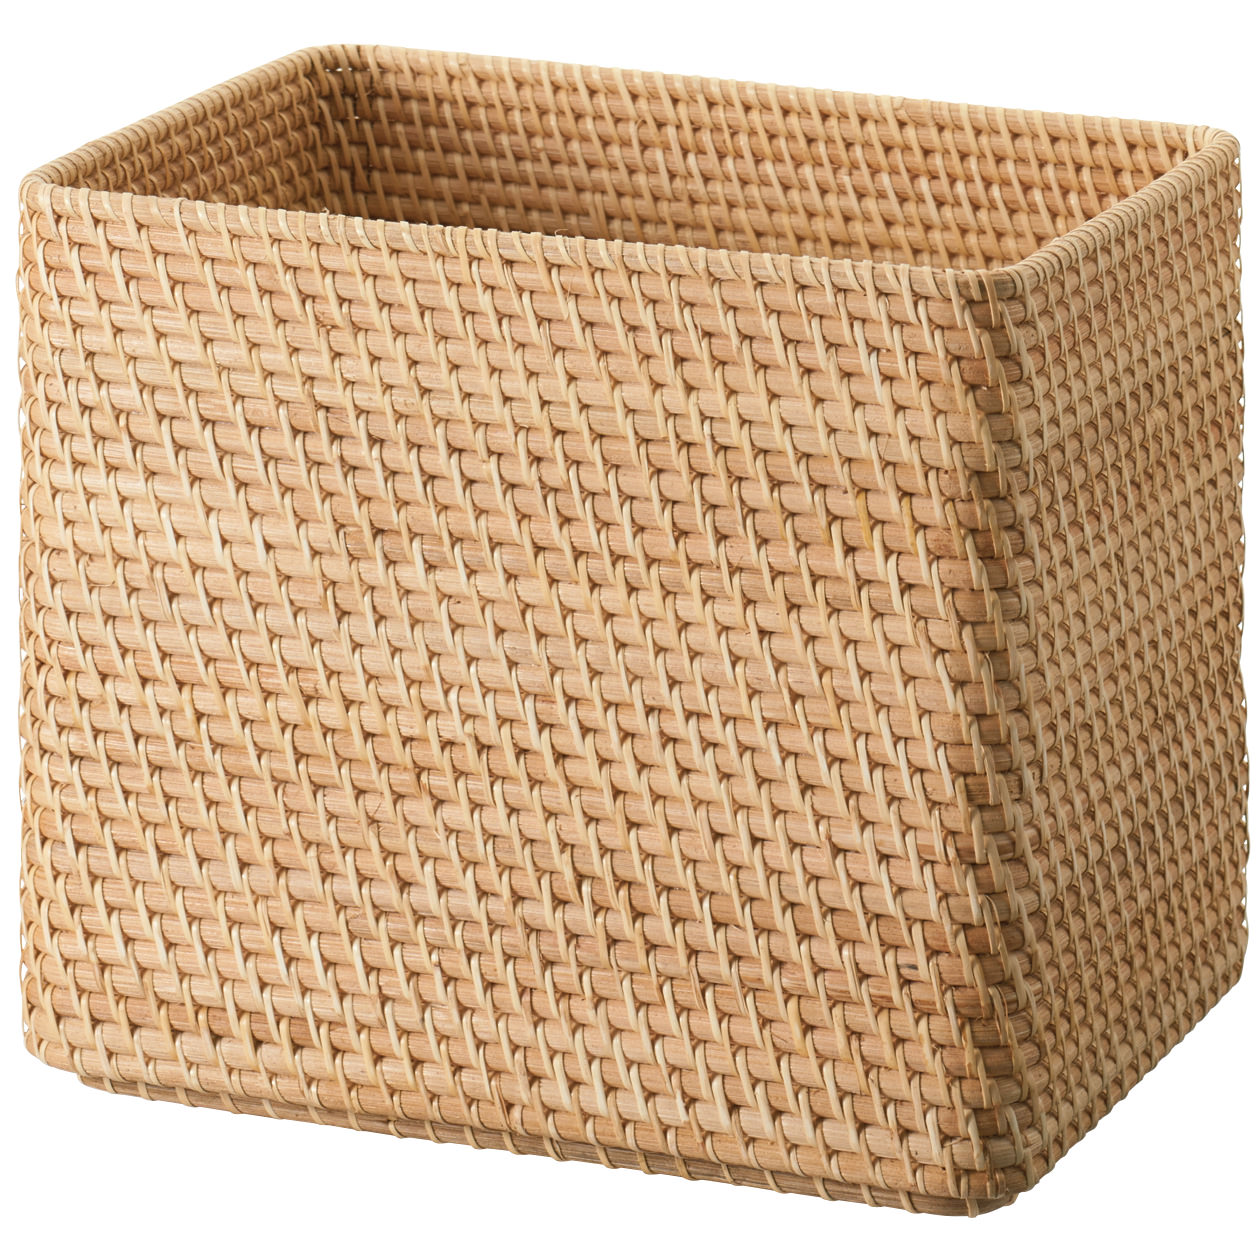 Eco-Friendly Feature rattan storage basket,sundry storage